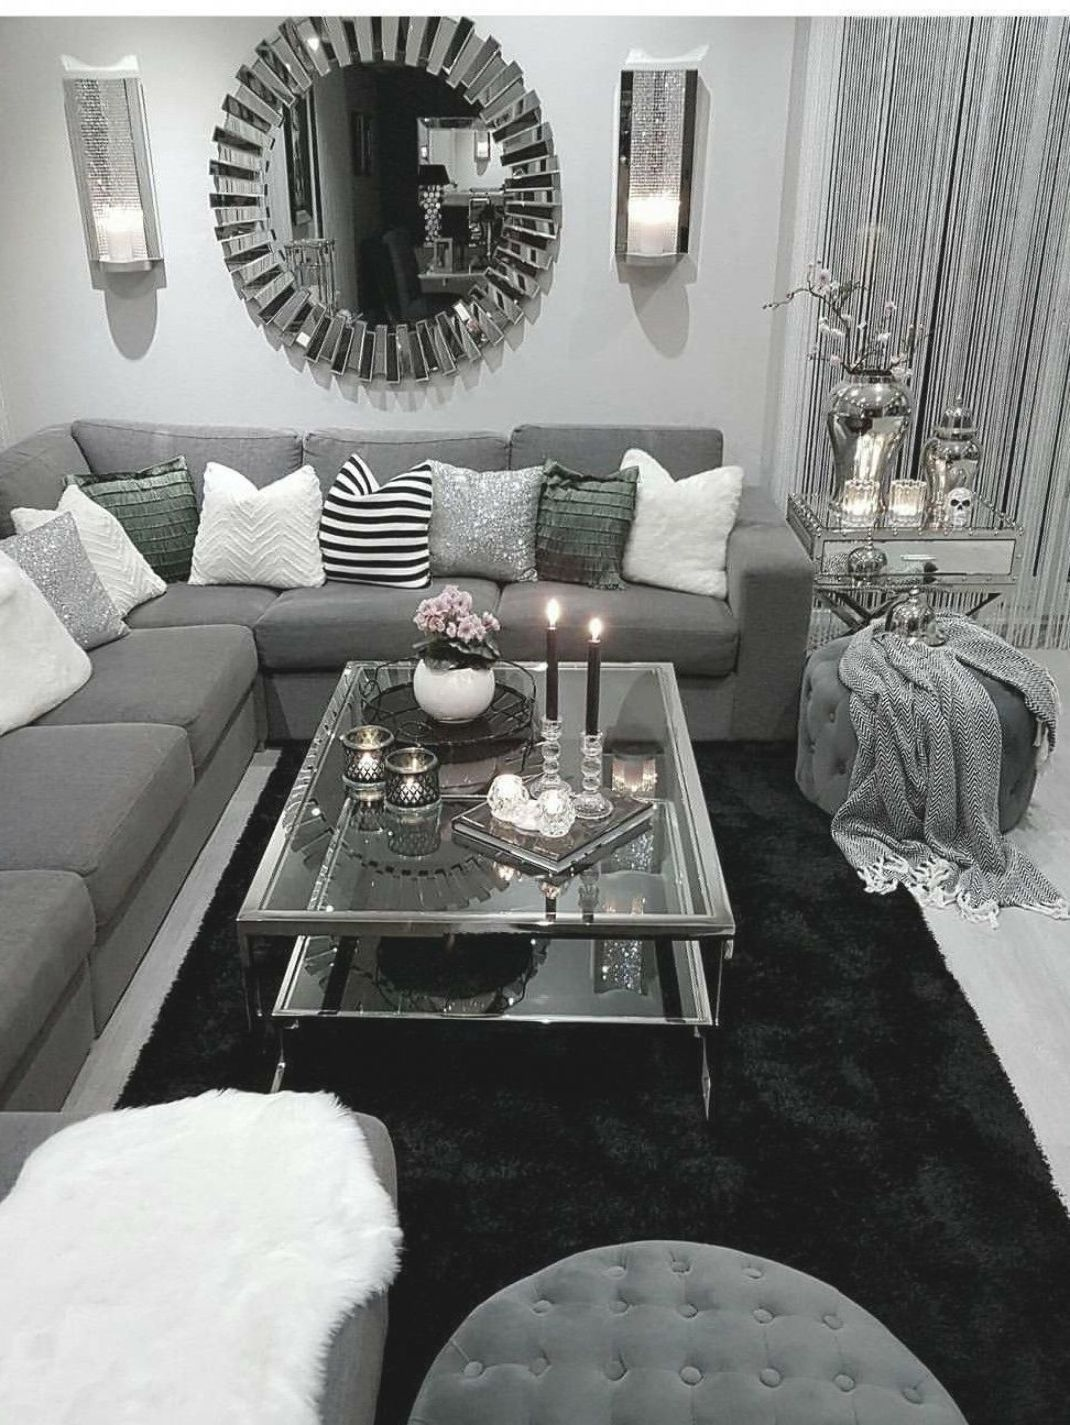 Pin By Nathalie Collado On Casa In 2020 Living Room Grey Black Furniture Living Room Comfy Living Room #silver #furniture #living #room